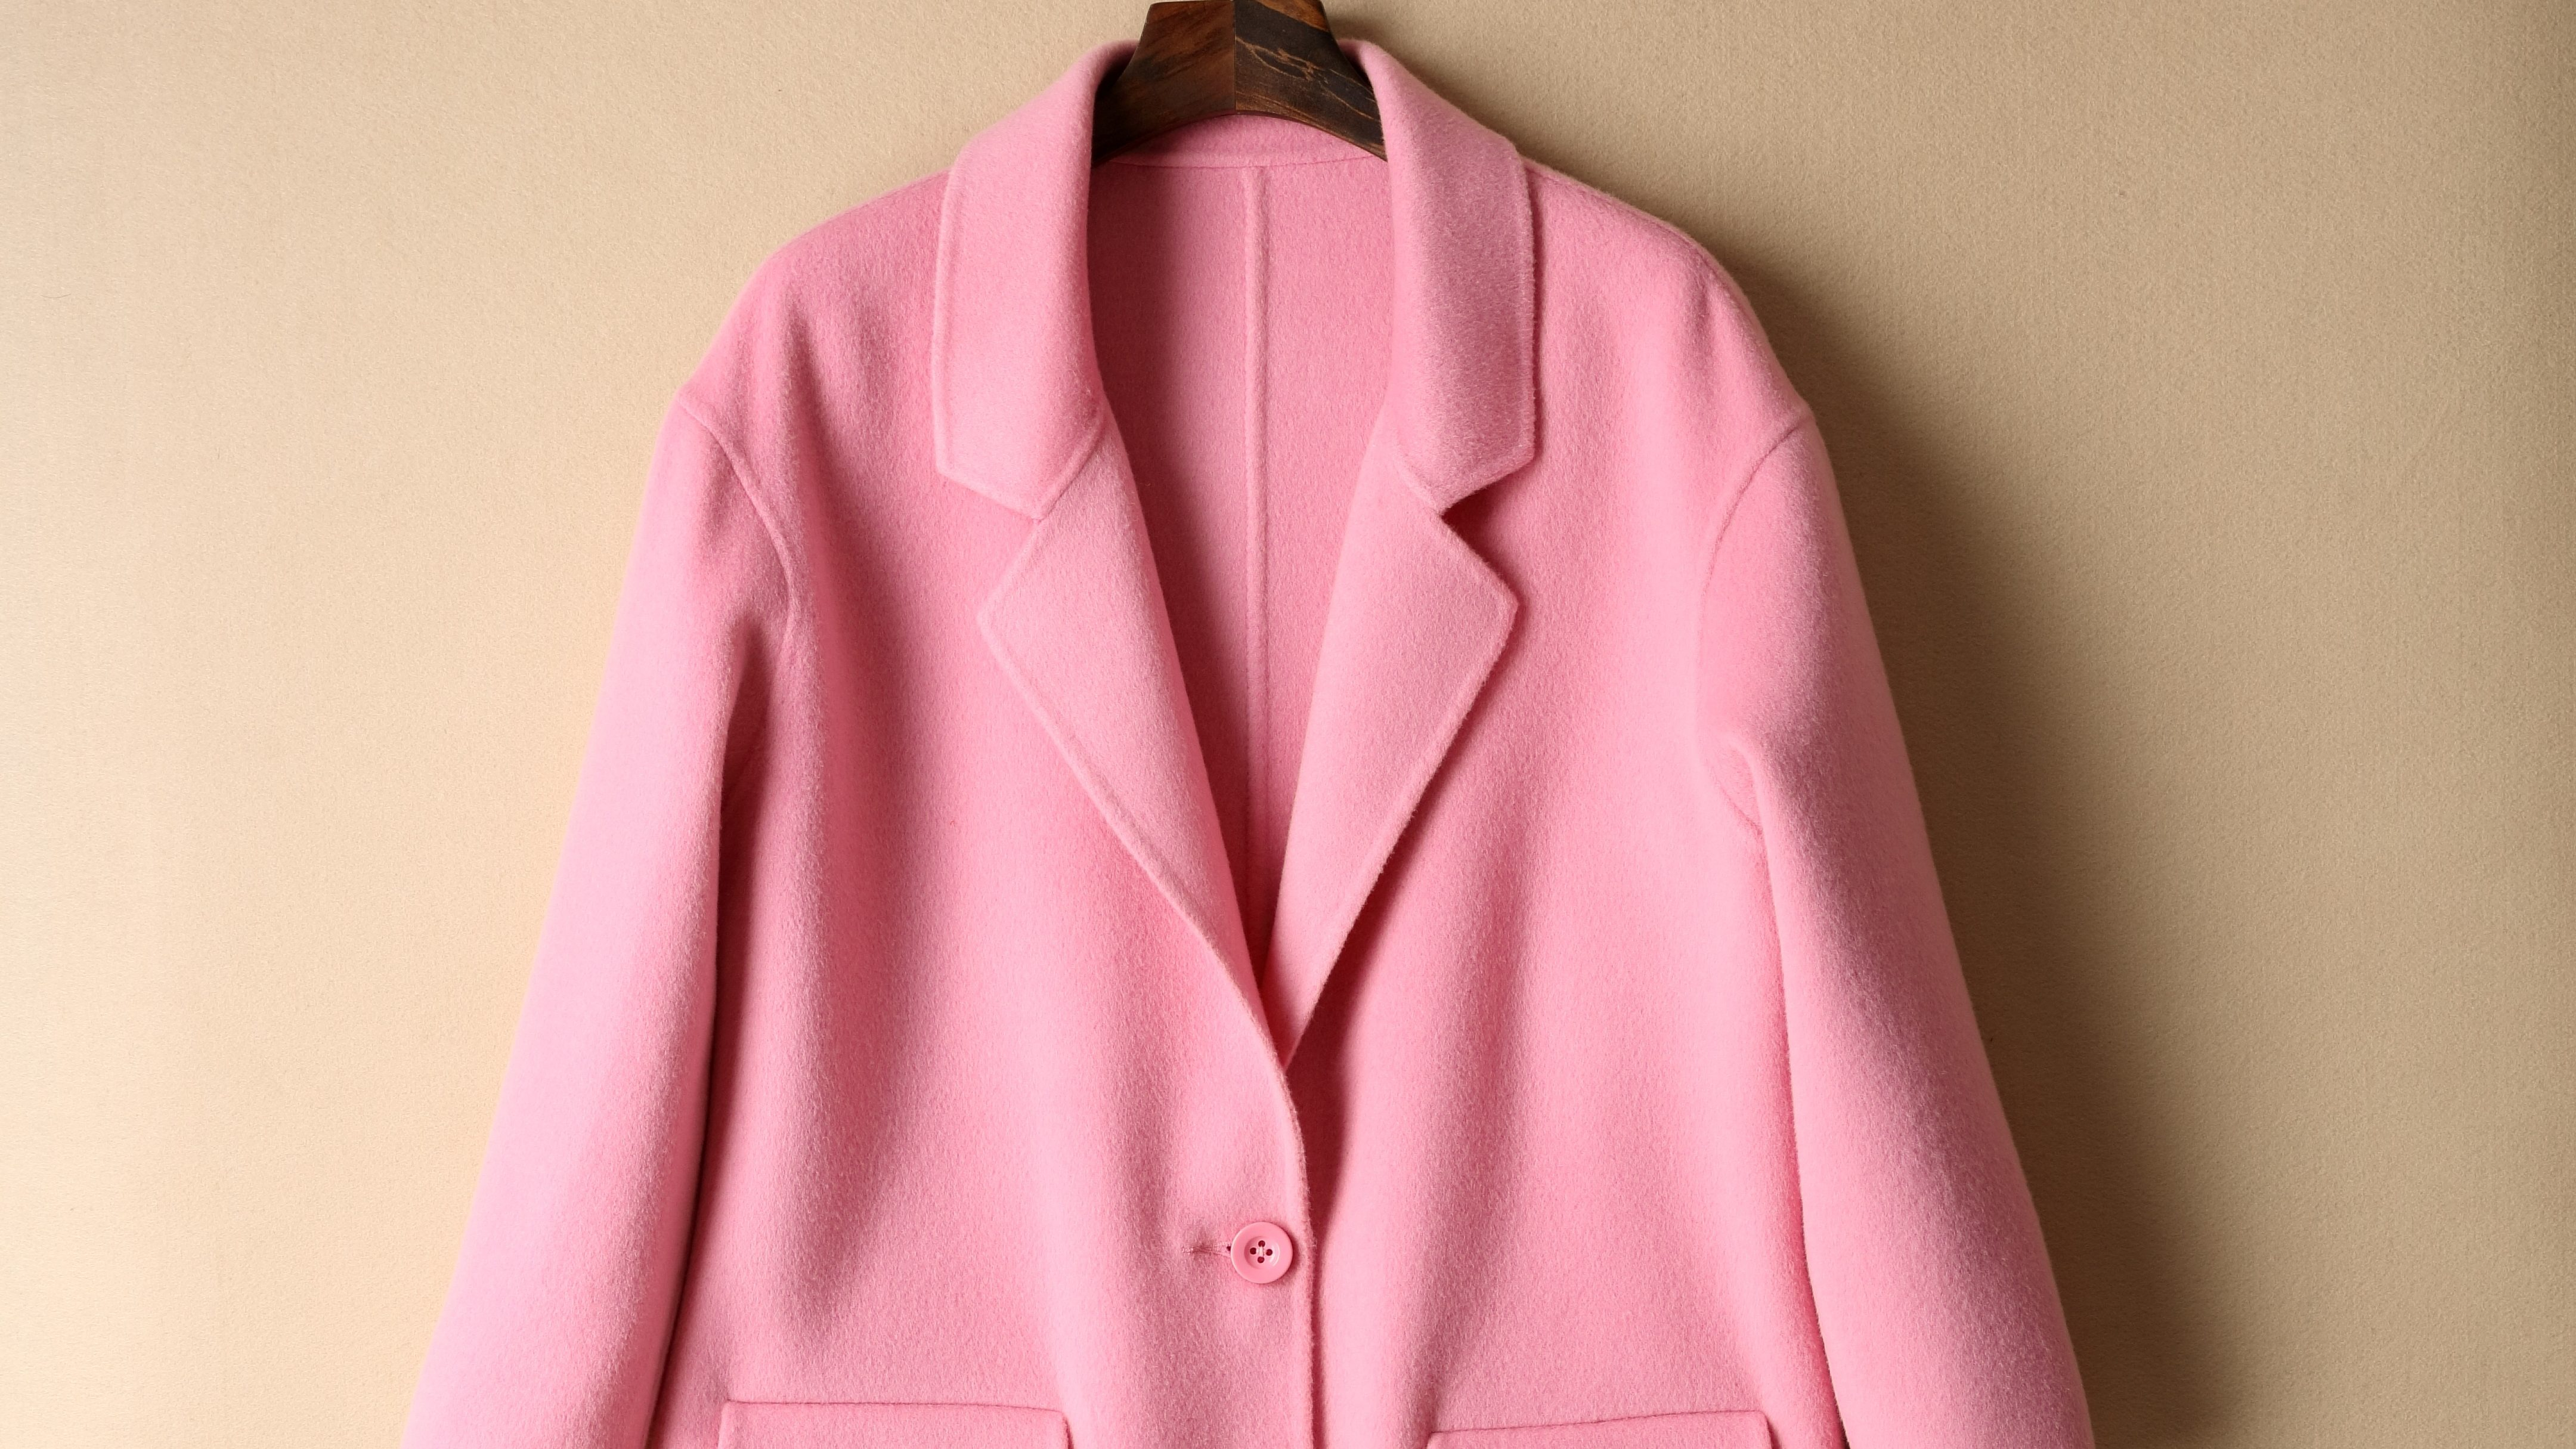 A pink coat on a hanger